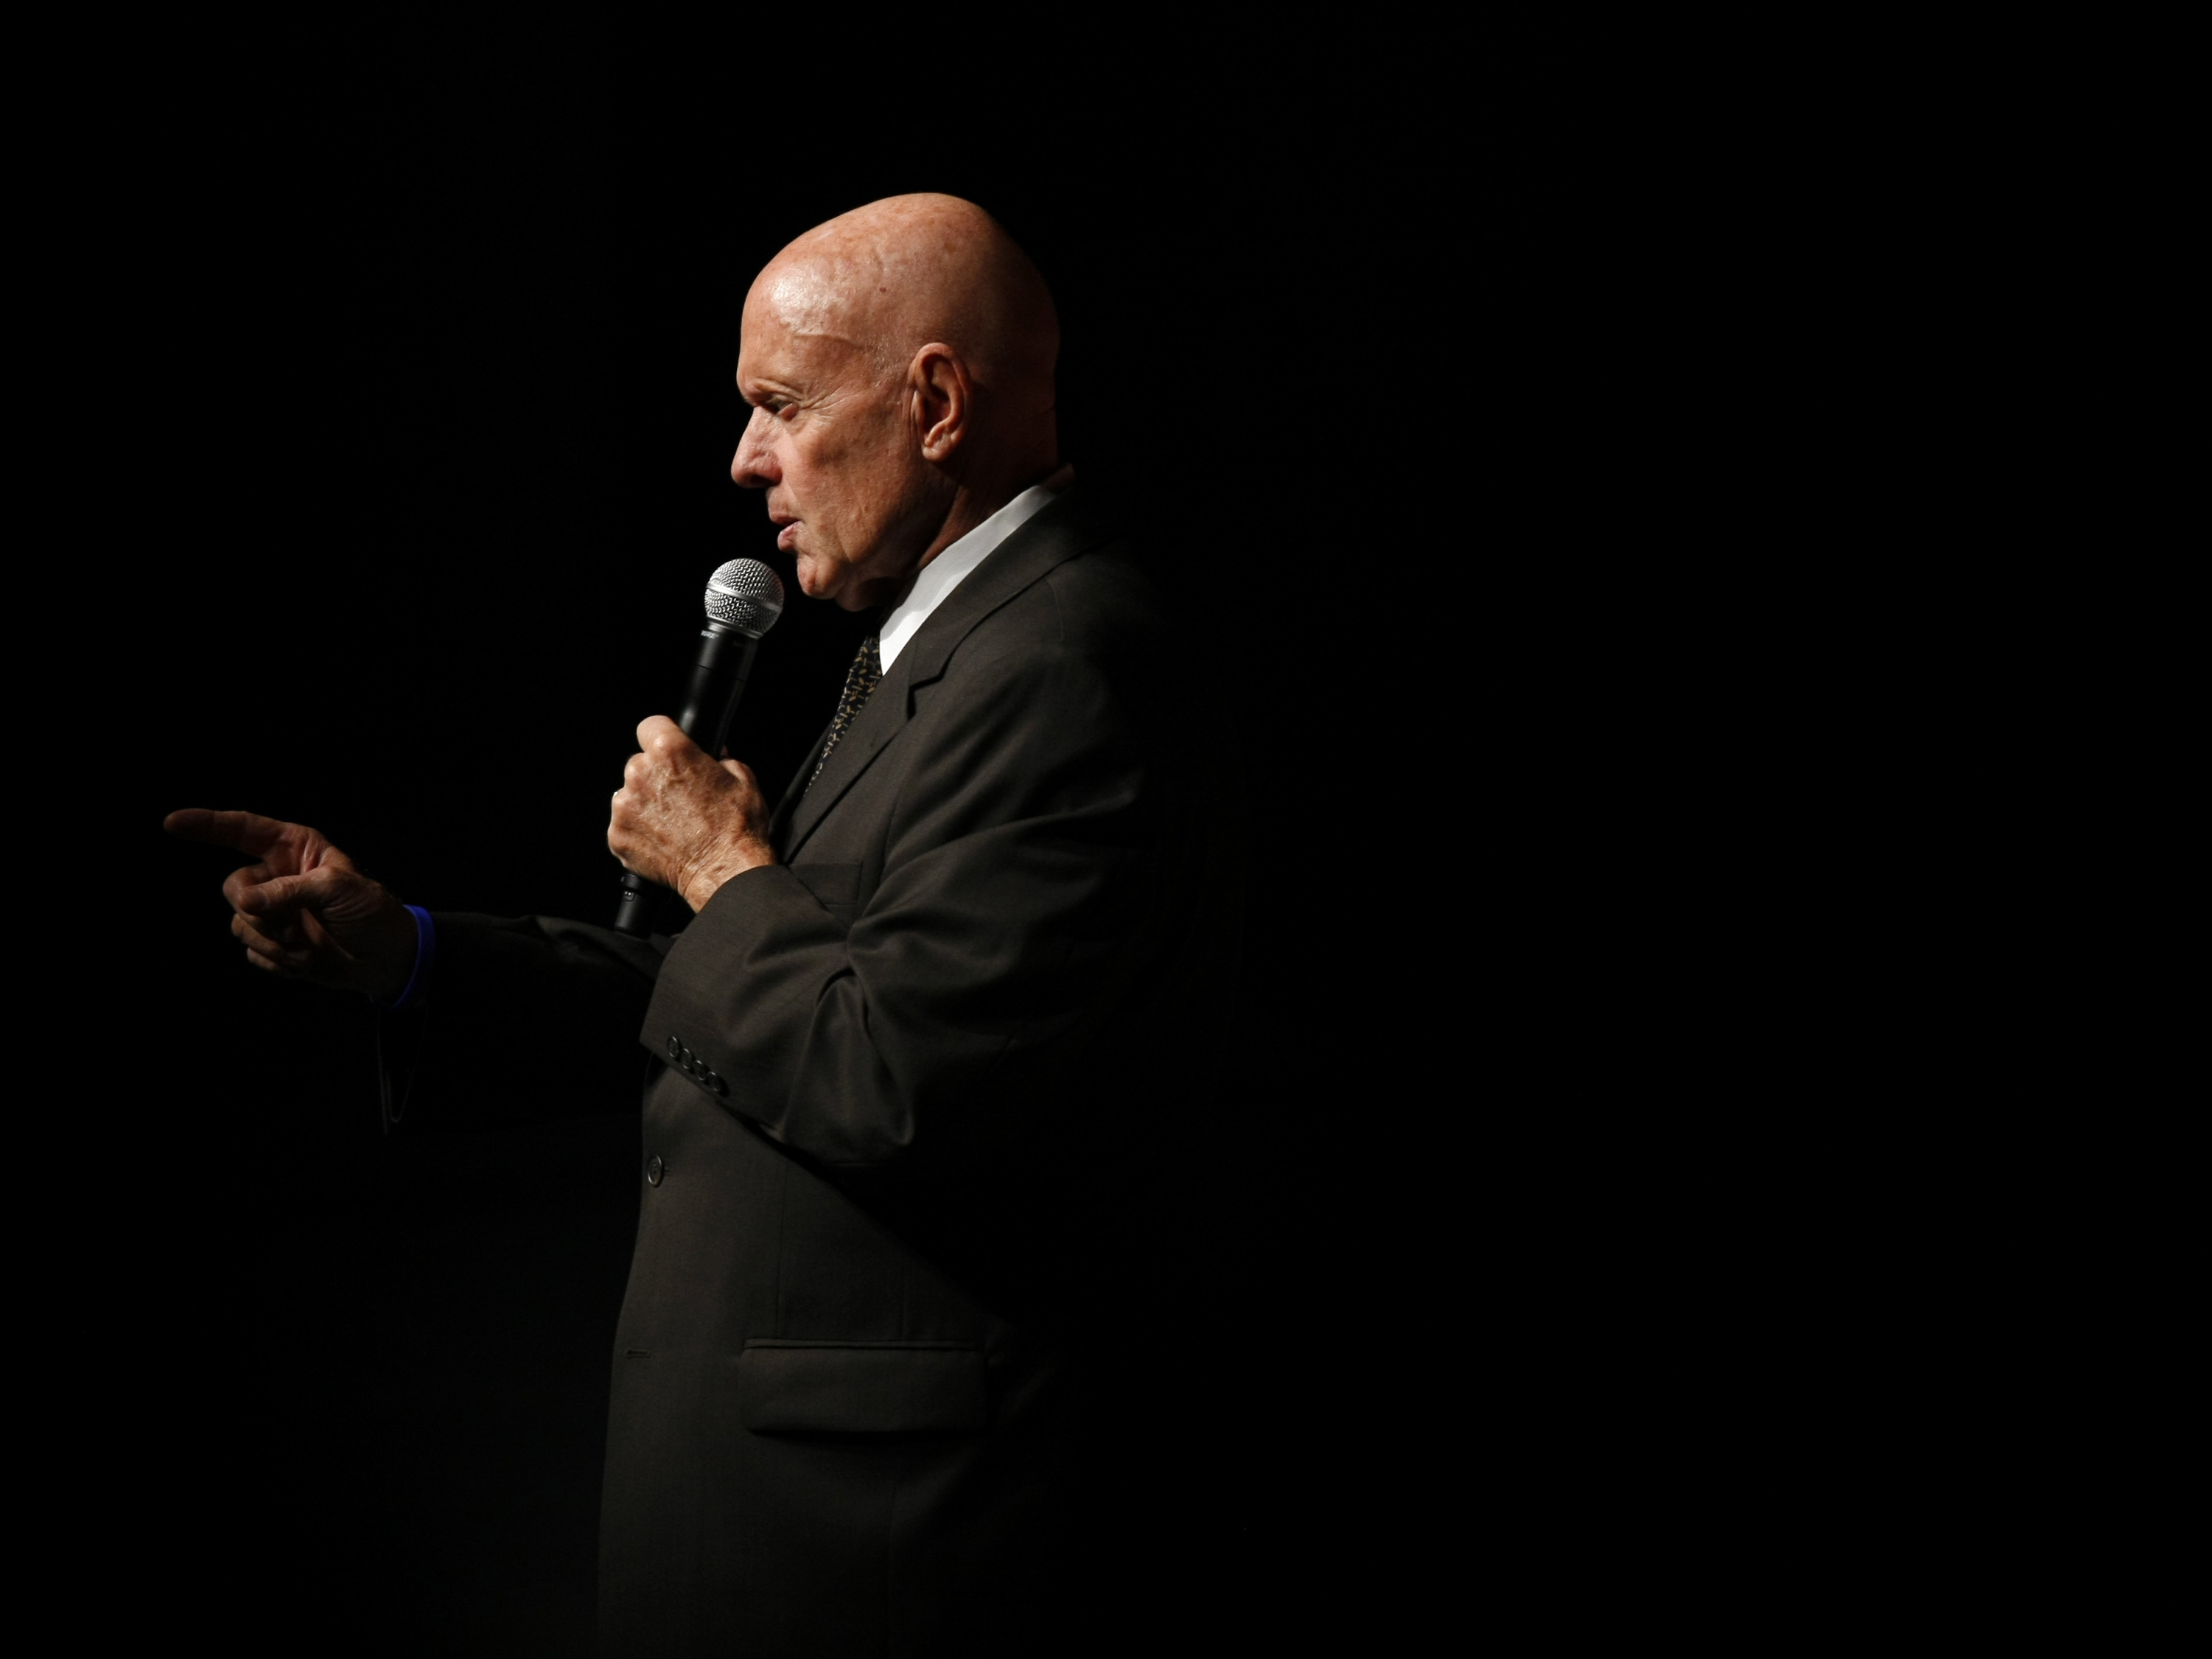 Stephen Covey S Habits Spanned Business Life